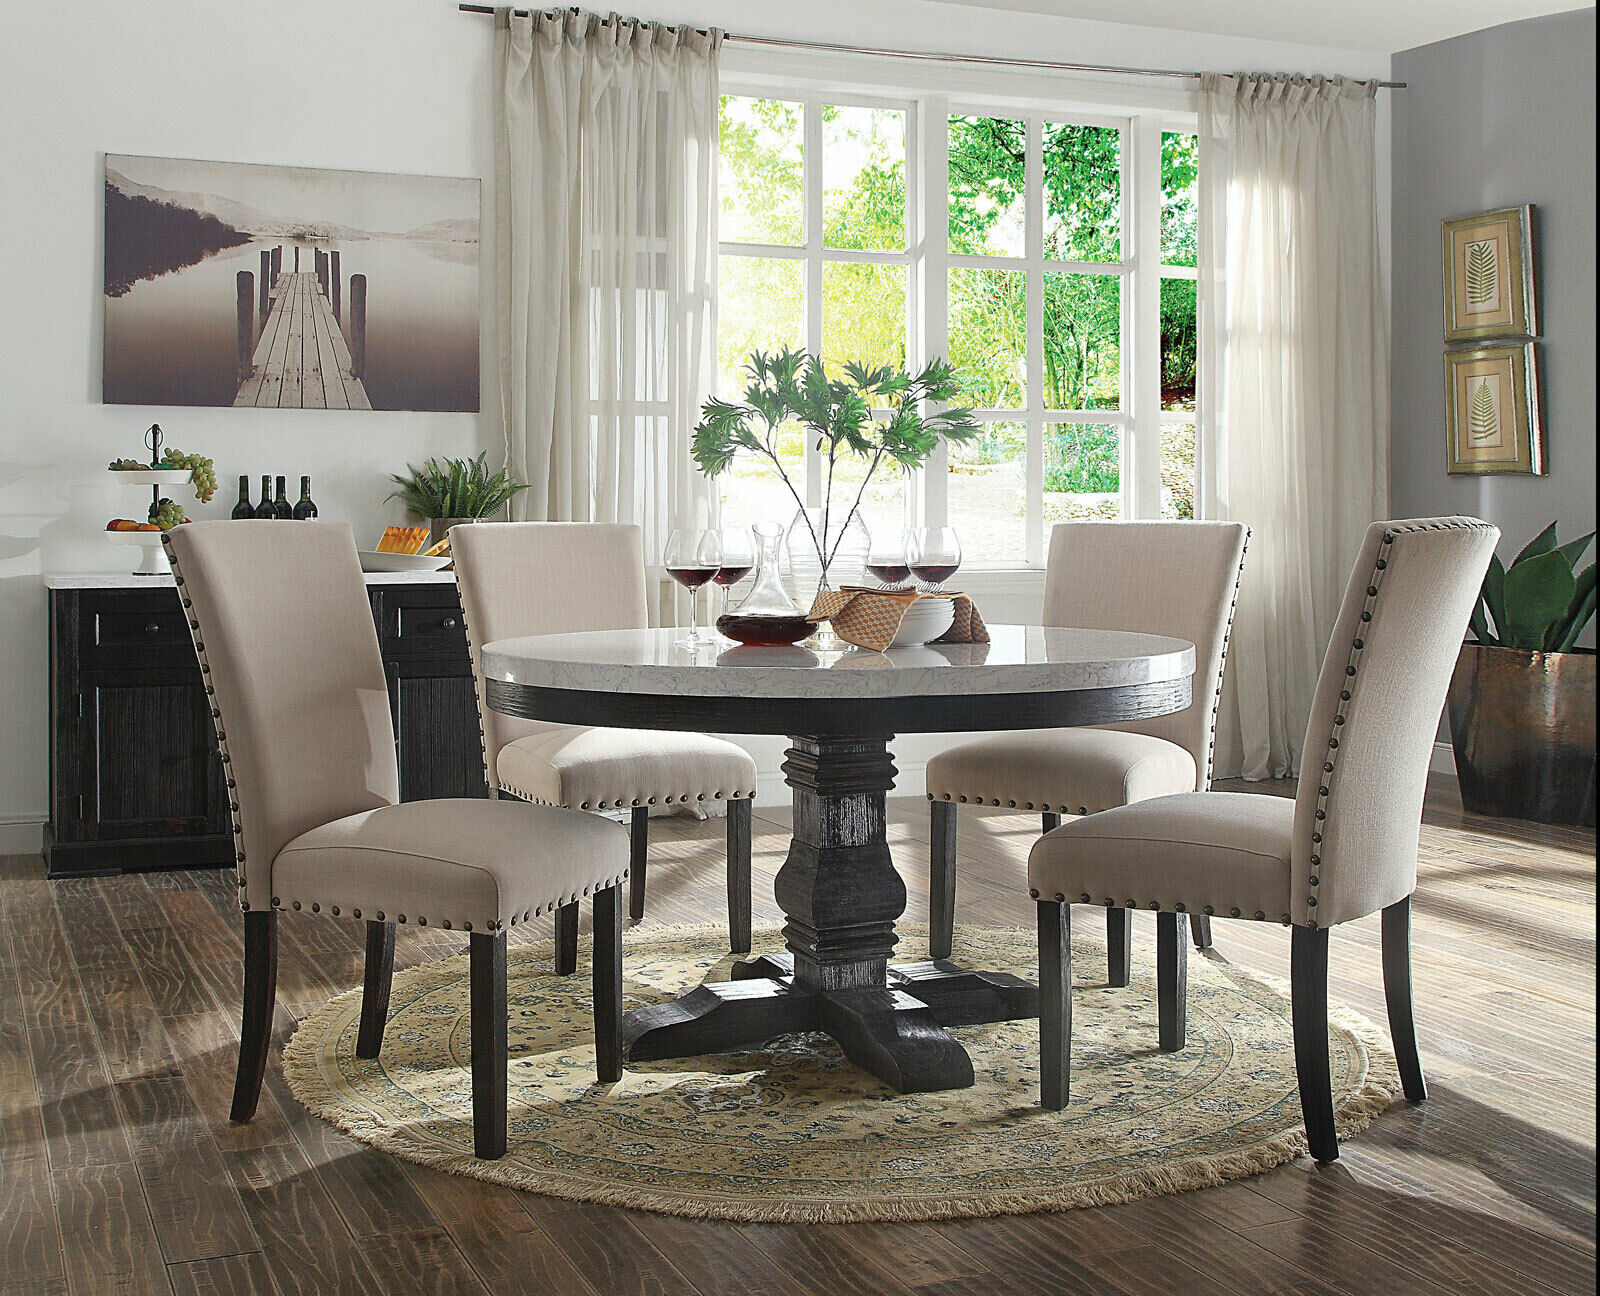 Modern Design 5pcs Dining Room Set Round White Marble Table Beige Chairs Acm For Sale Online